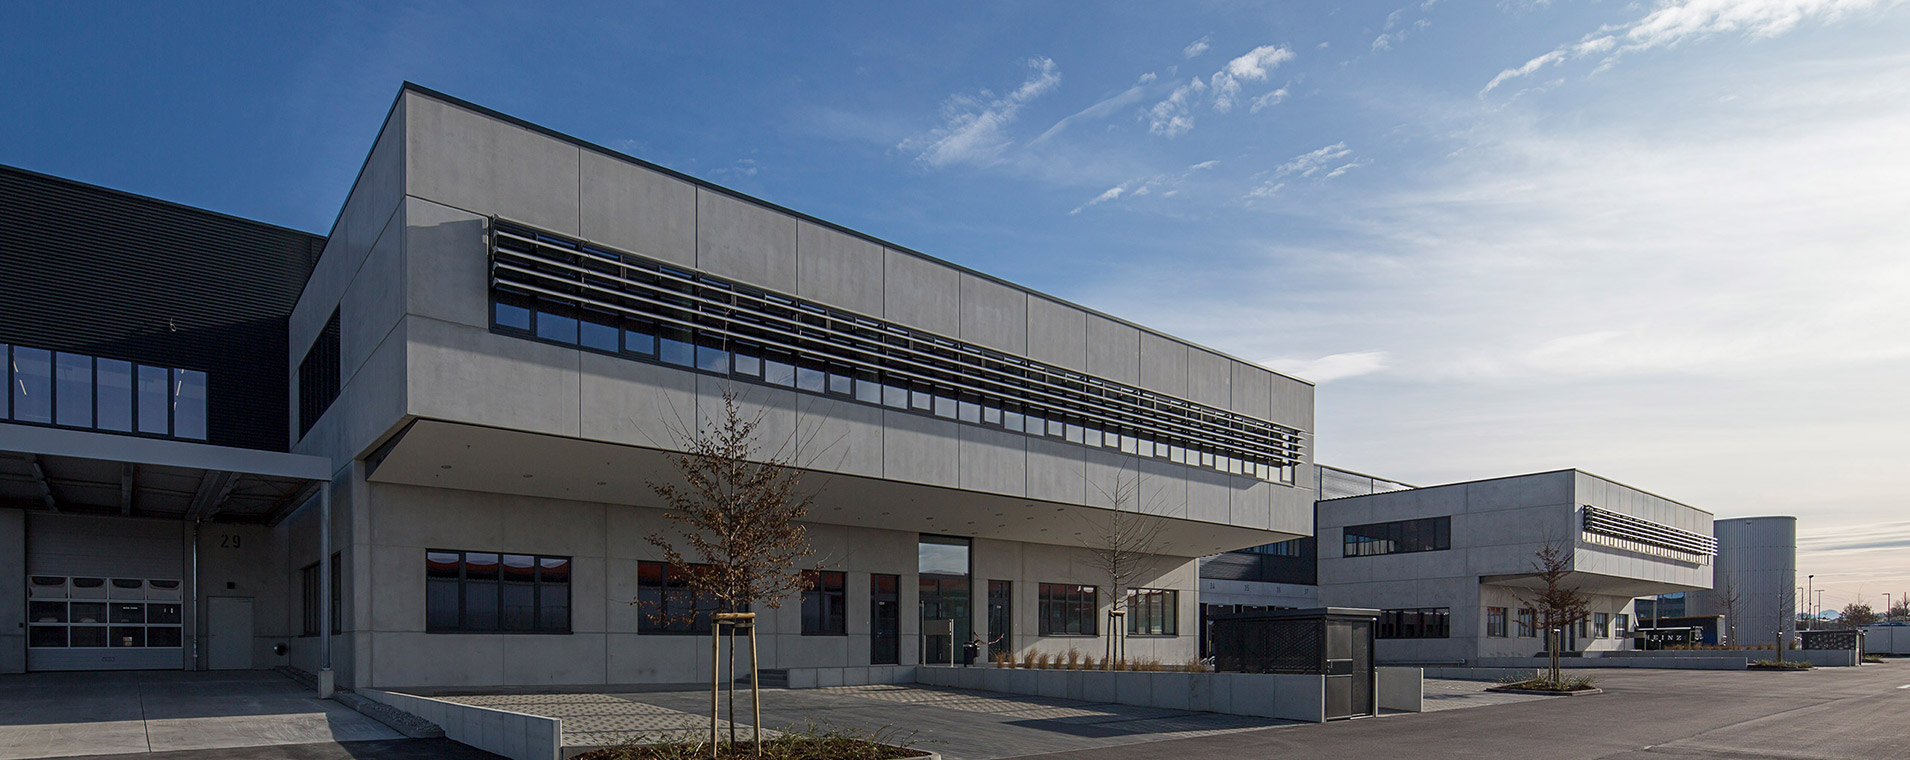 Logistik Architektur Immogate Parsdorf